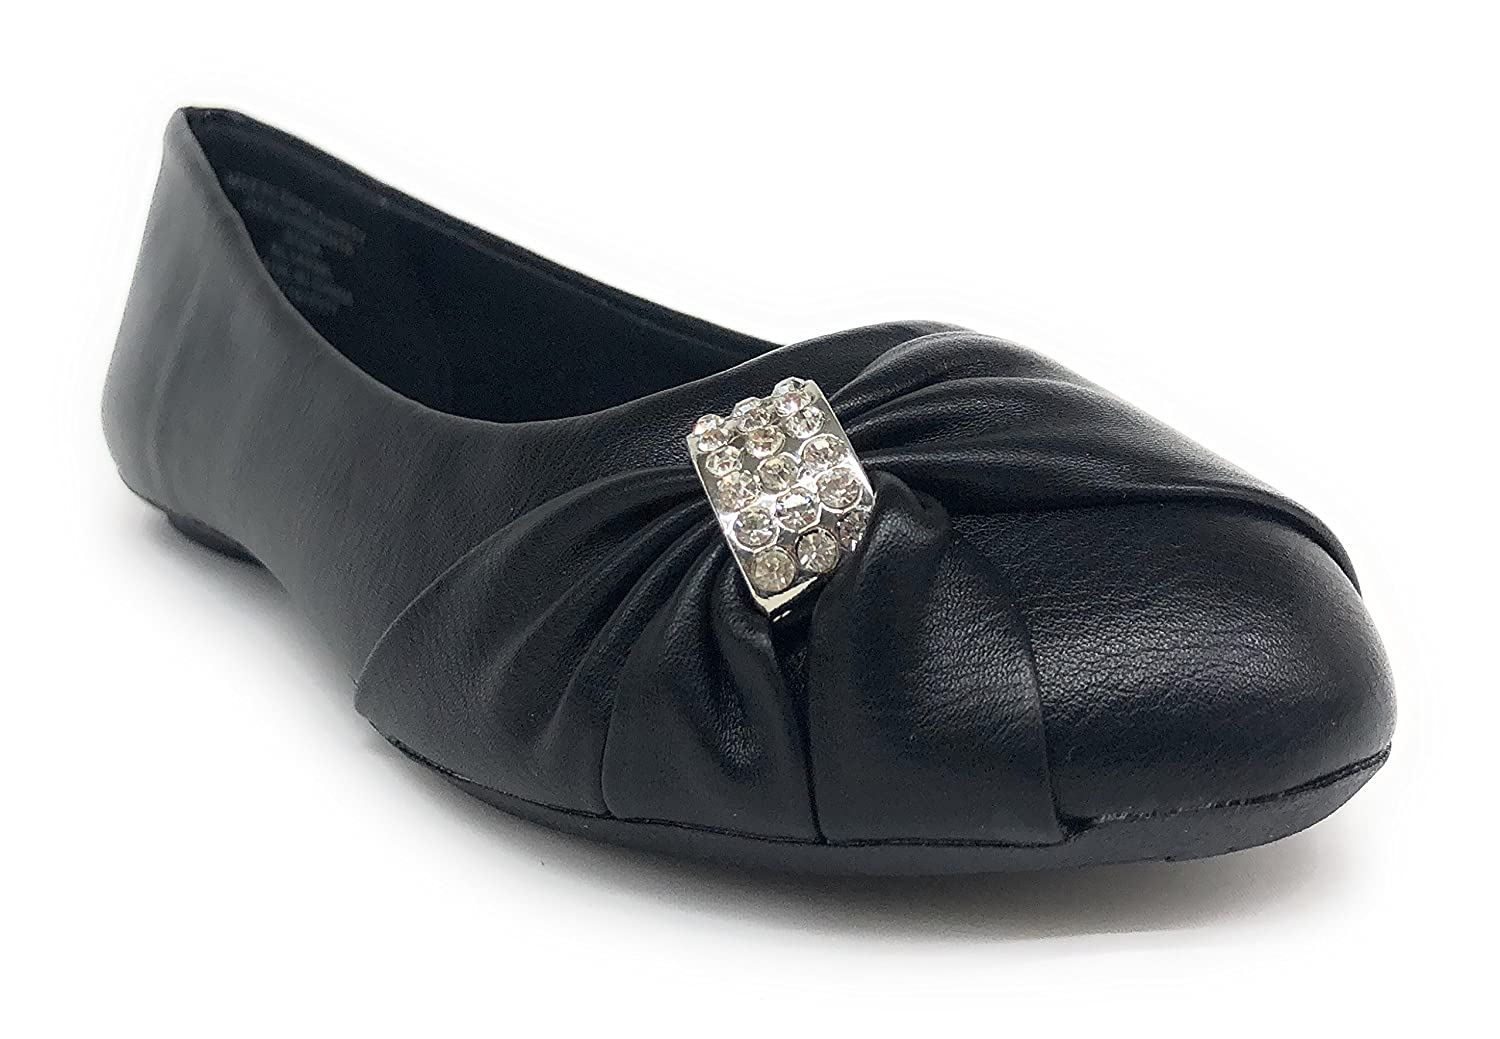 Imei Girls School Dress Formal Wedding Diamon Gem Flats